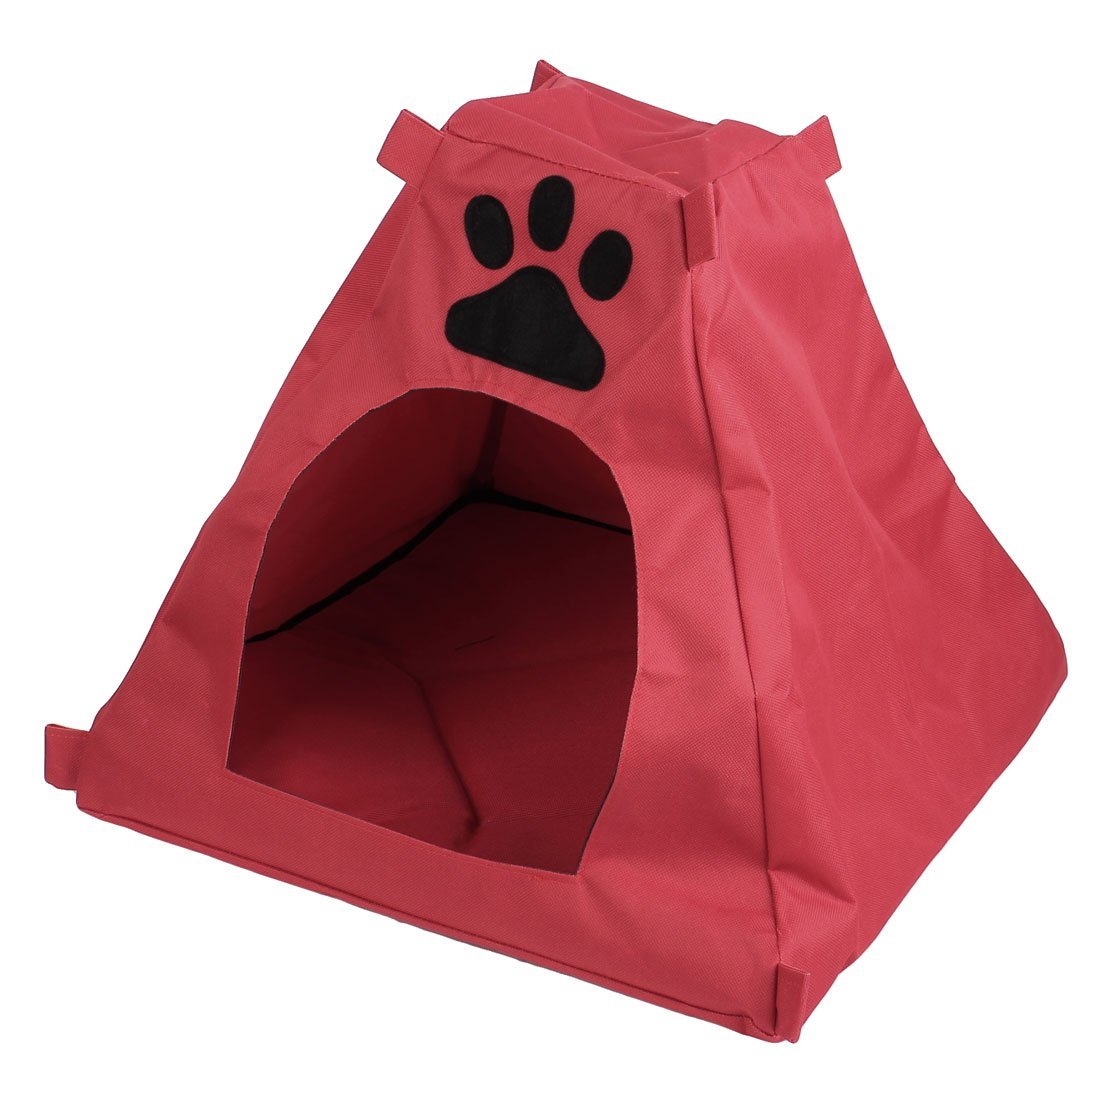 Uxcell Paw Pattern Pet Tent Doghouse Nest, 40cm, Red